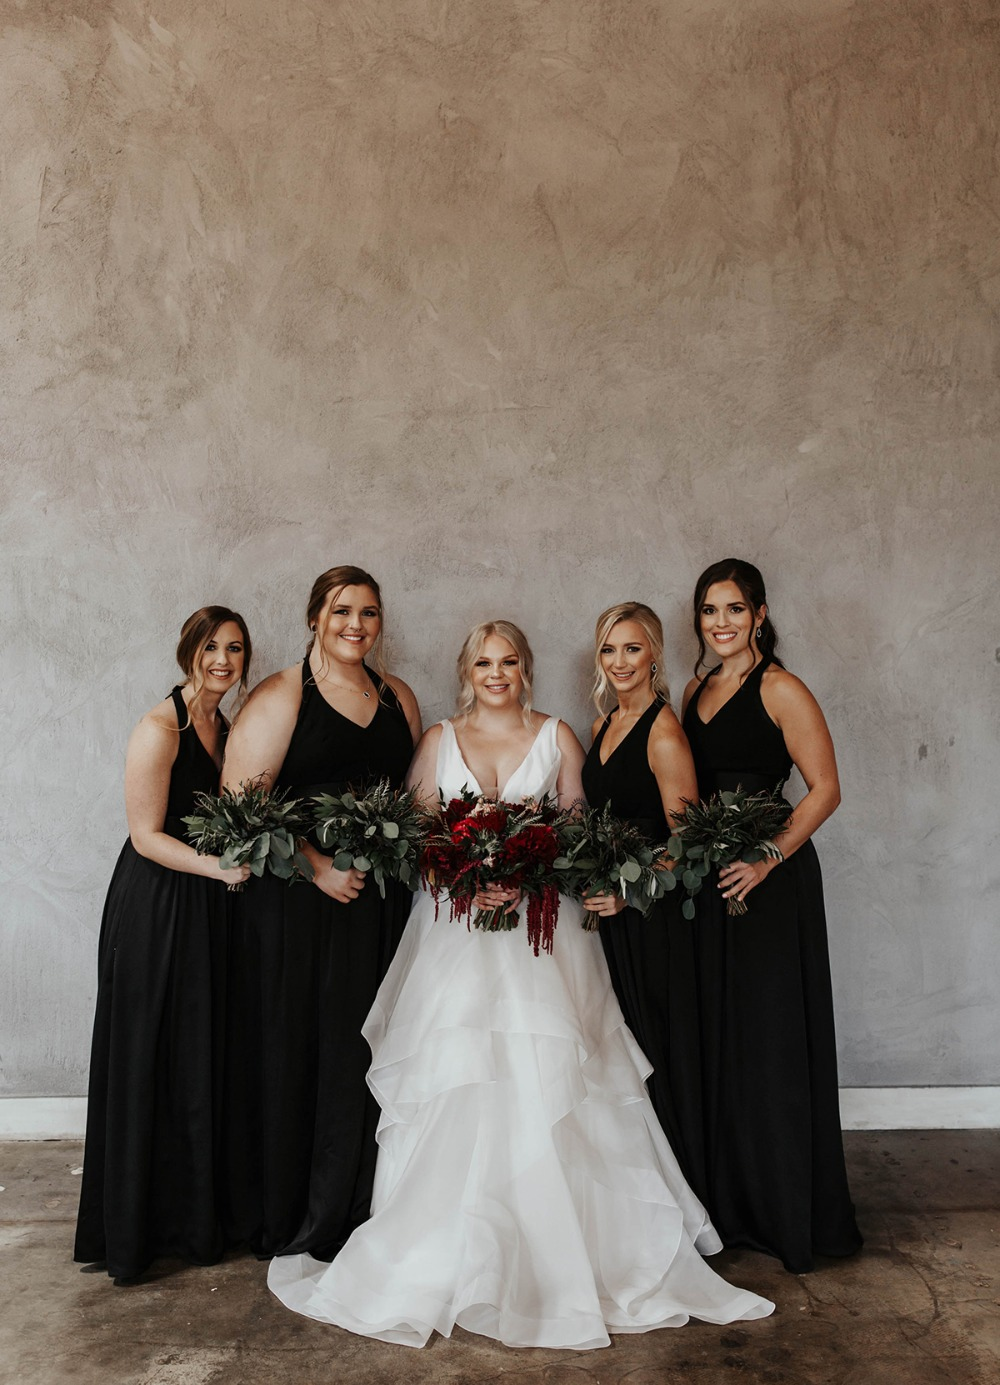 bride and her bridesmaids in all black